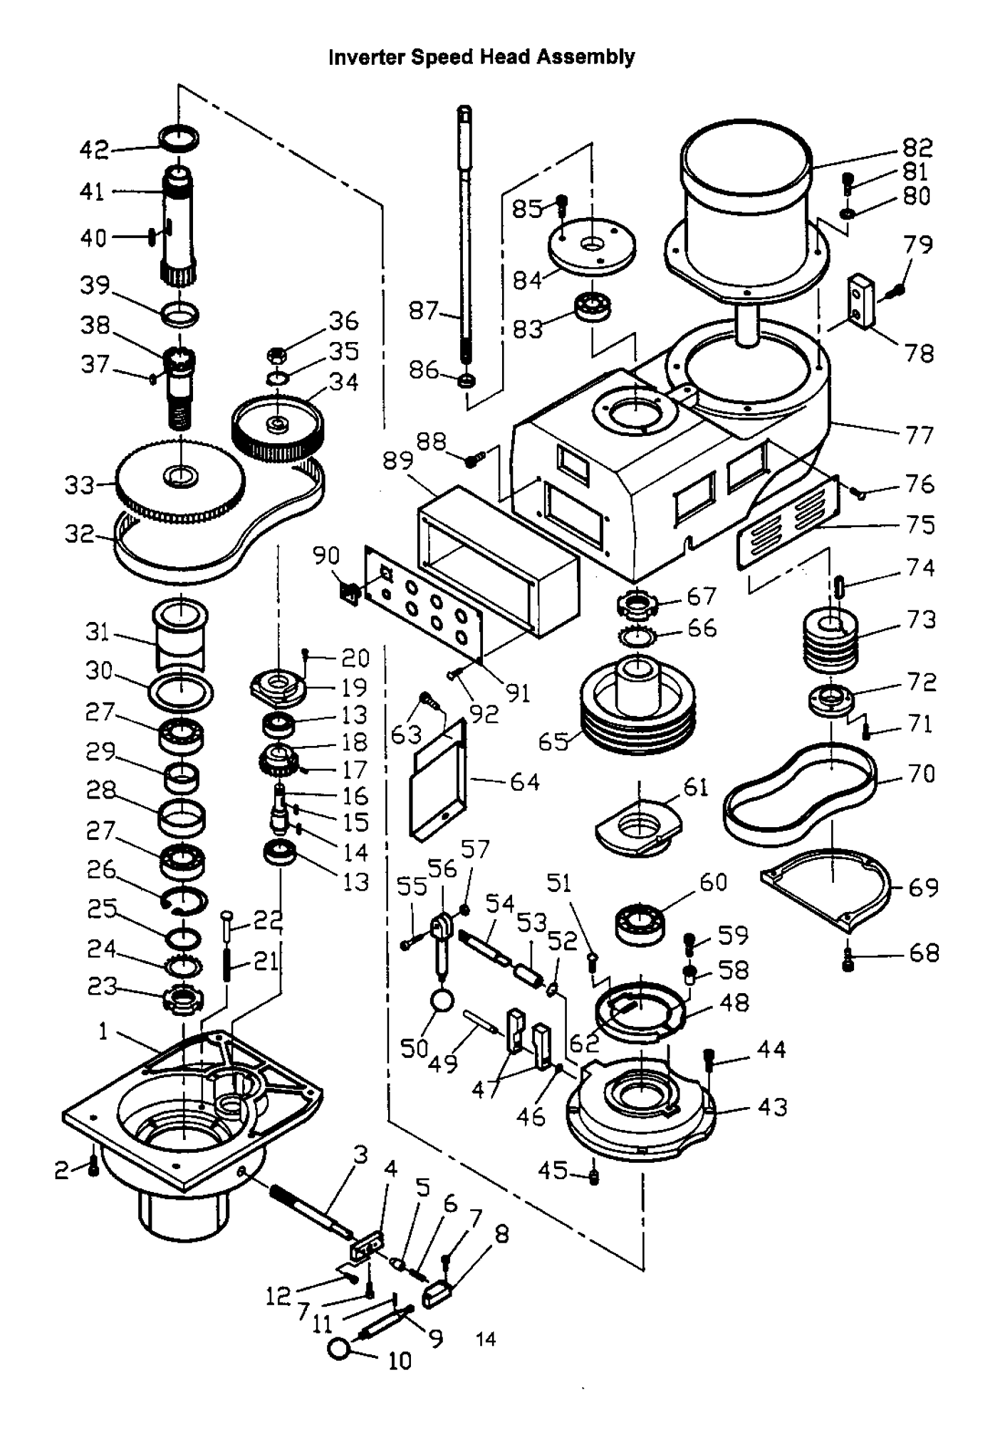 Machine Parts Schematic Not Lossing Wiring Diagram Sewing Motor Buy Jet 690912 Jtm 1050evs 230 Milling With Acu Rite 3 Axis Rh Toolpartspro Com Sizing Machinery Manual